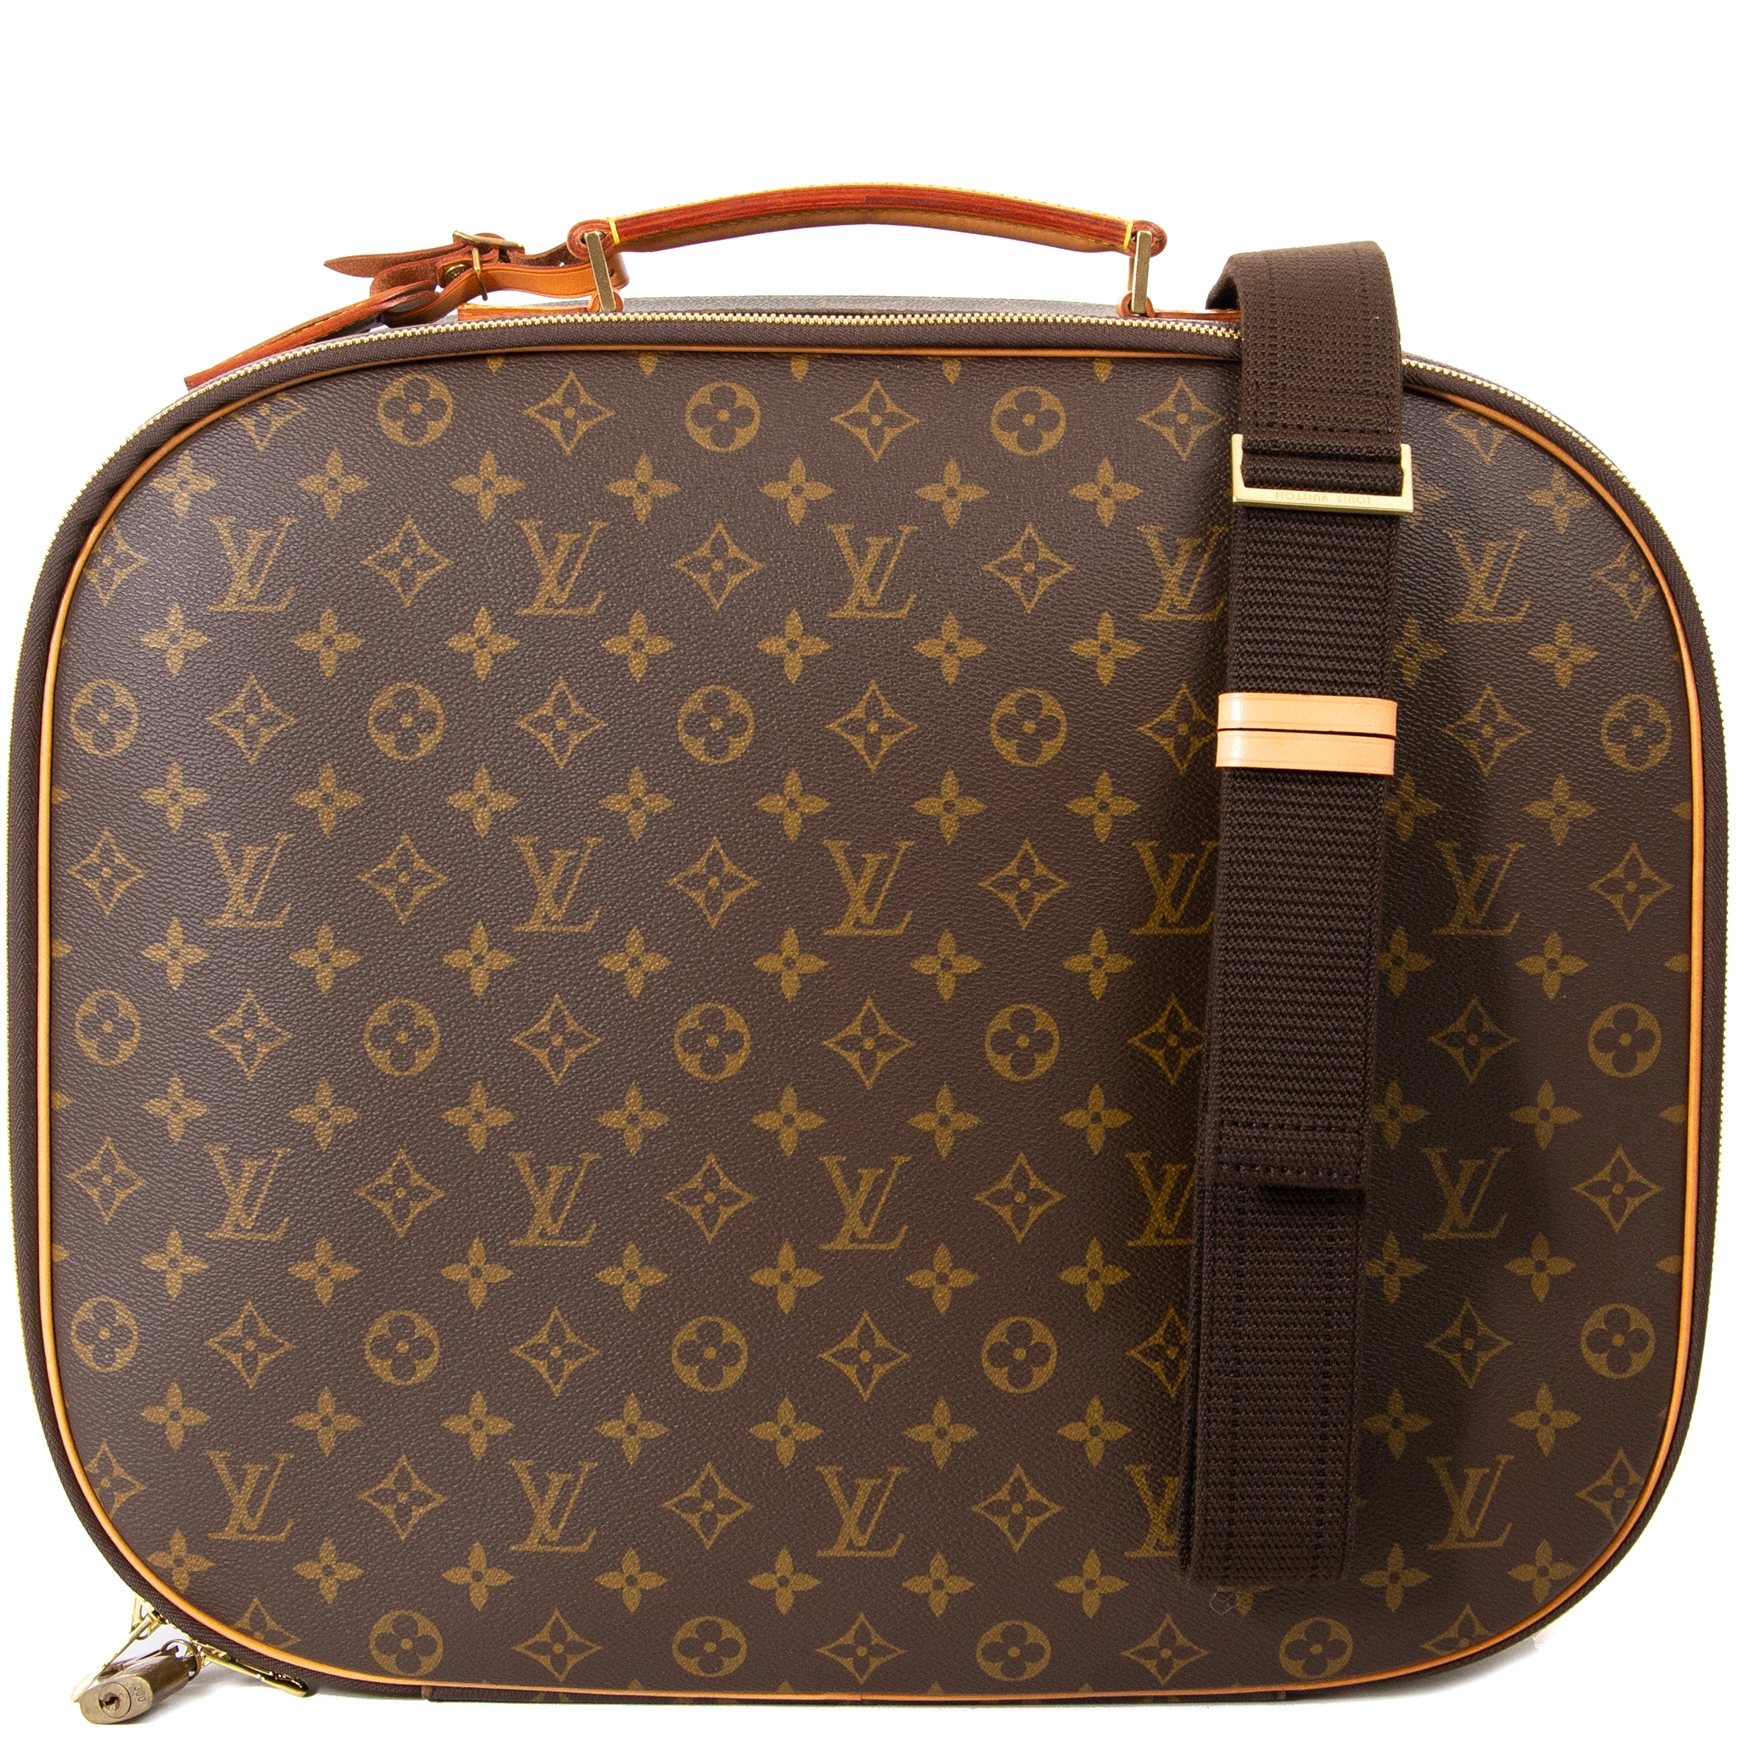 Buy your authentic Louis Vuitton Monogram Travel Case for the best price at Labellov secondhand luxury in Antwerp